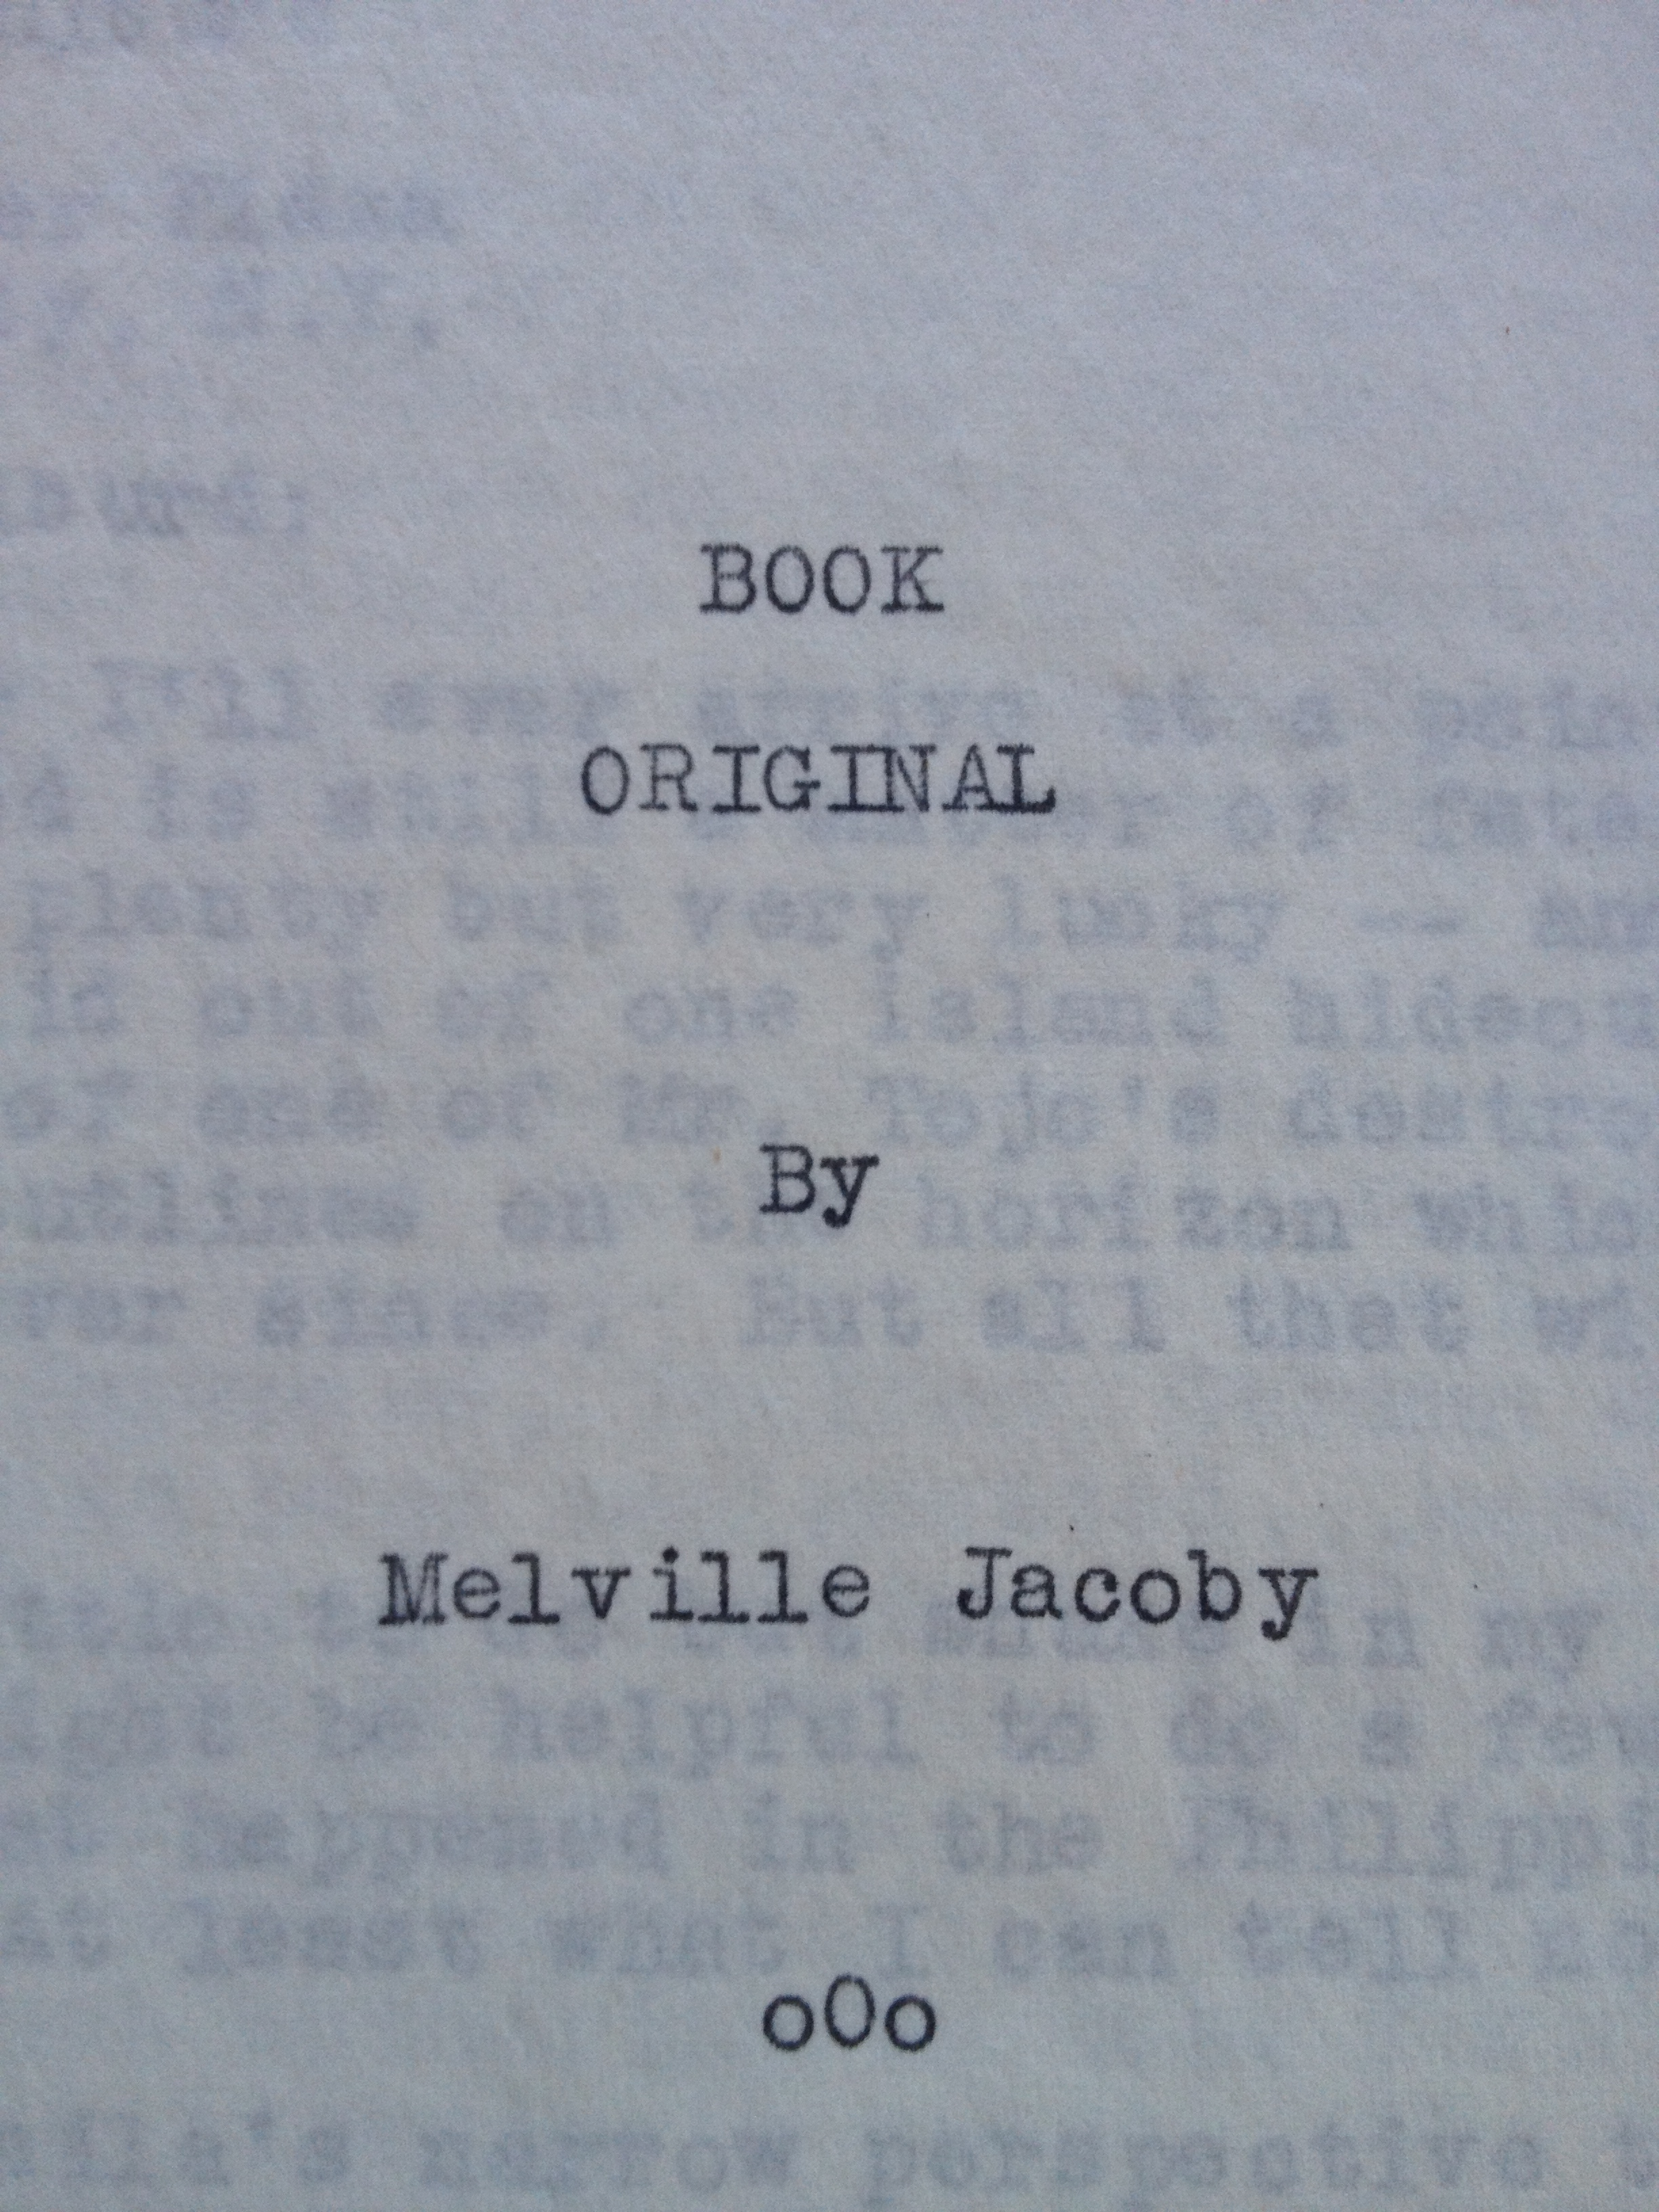 The Cover Page from the first draft of Melville Jacoby's Book